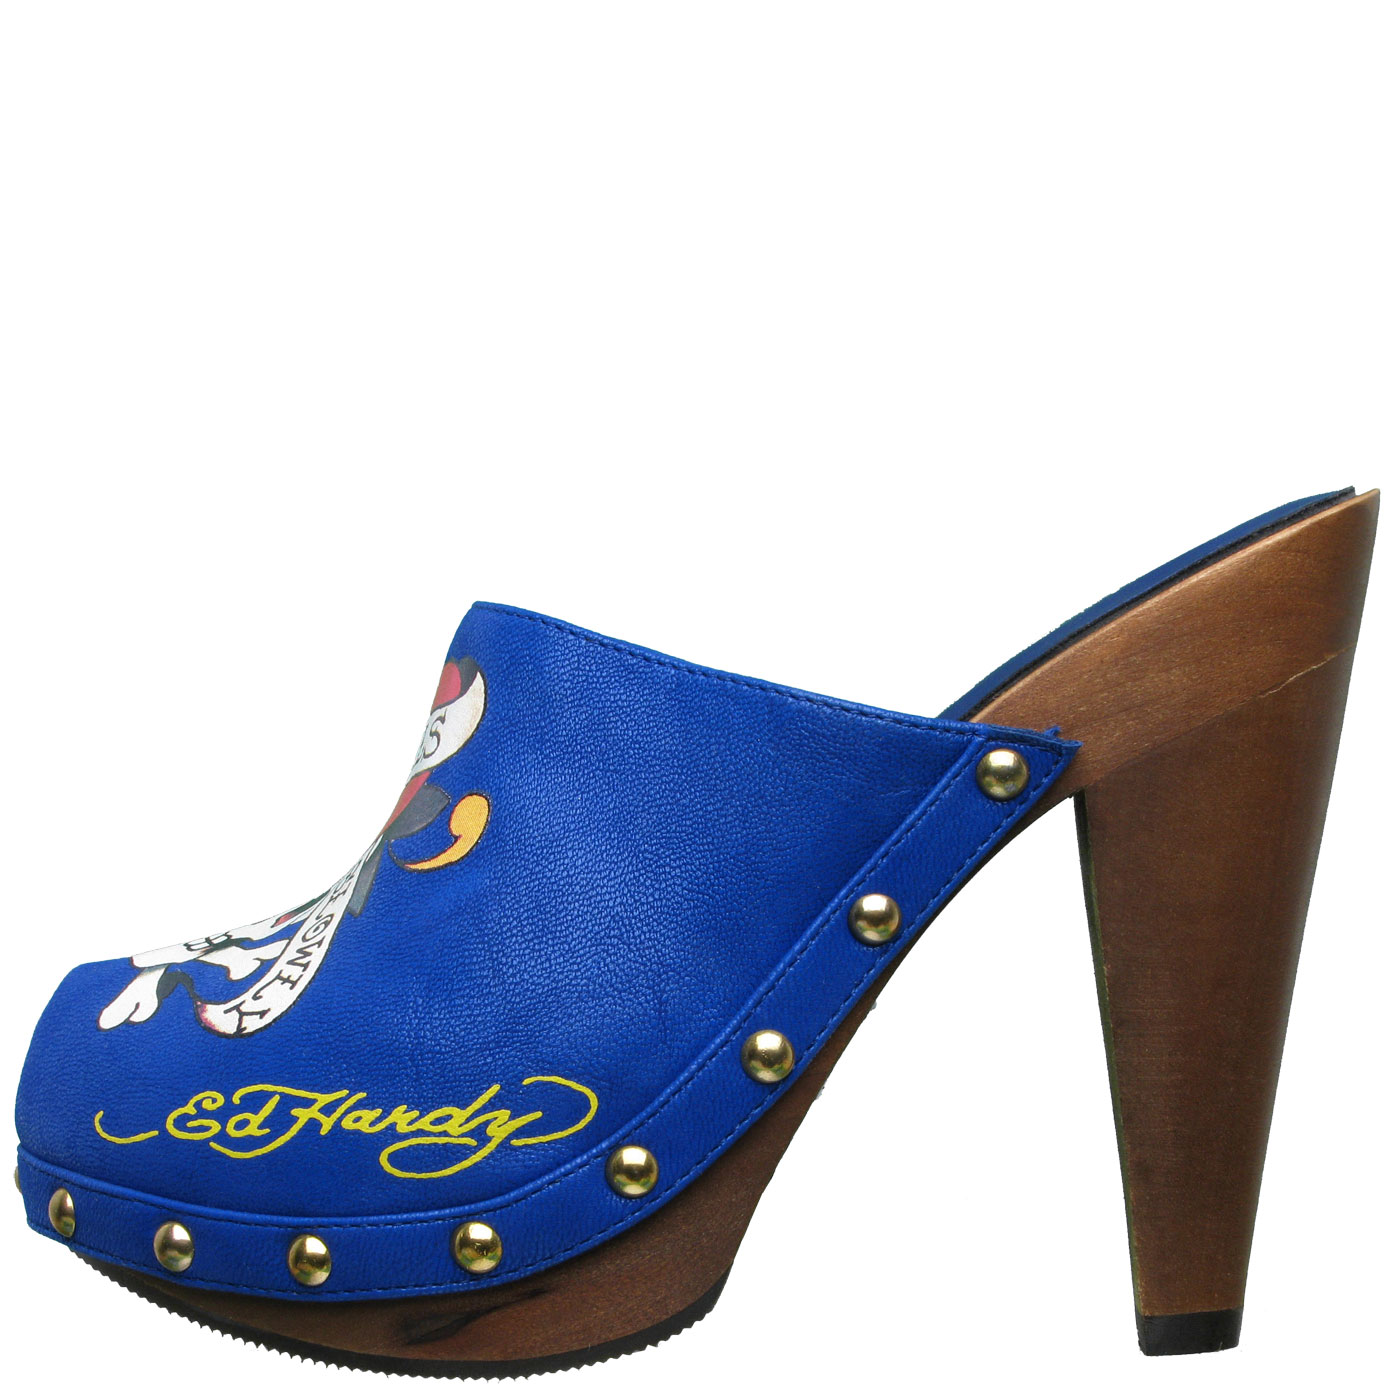 Ed Hardy Portland Pump Shoe for Women - Blue